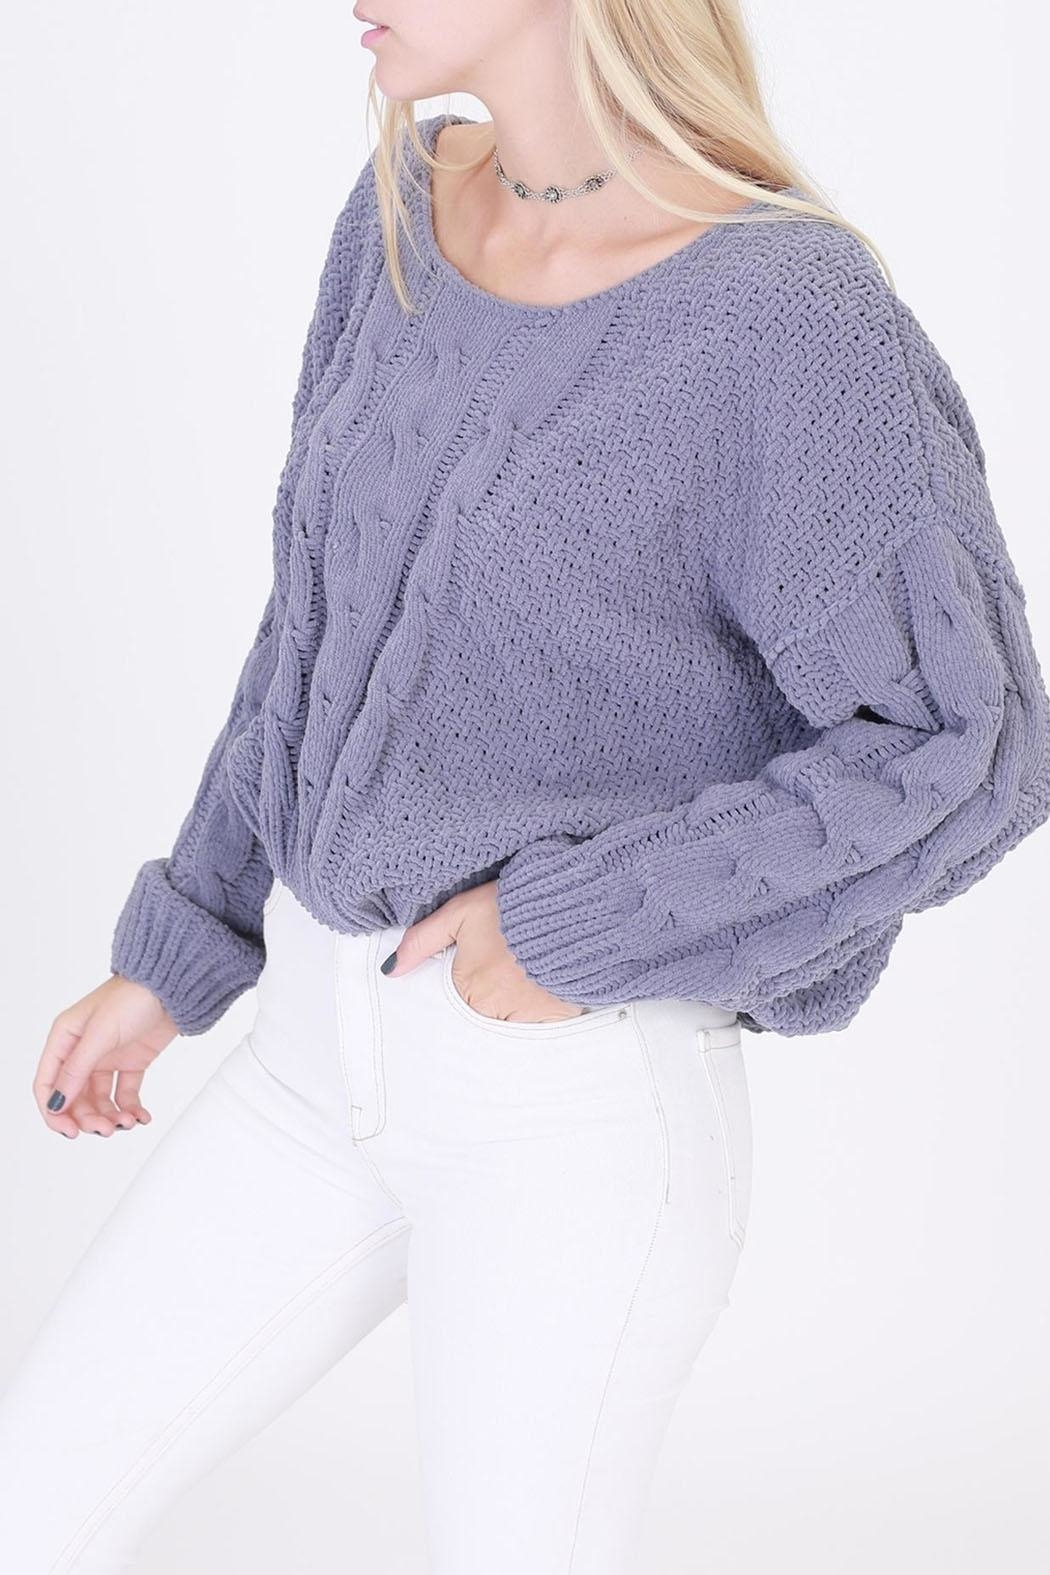 HYFVE Pullover Cropped Sweater - Main Image